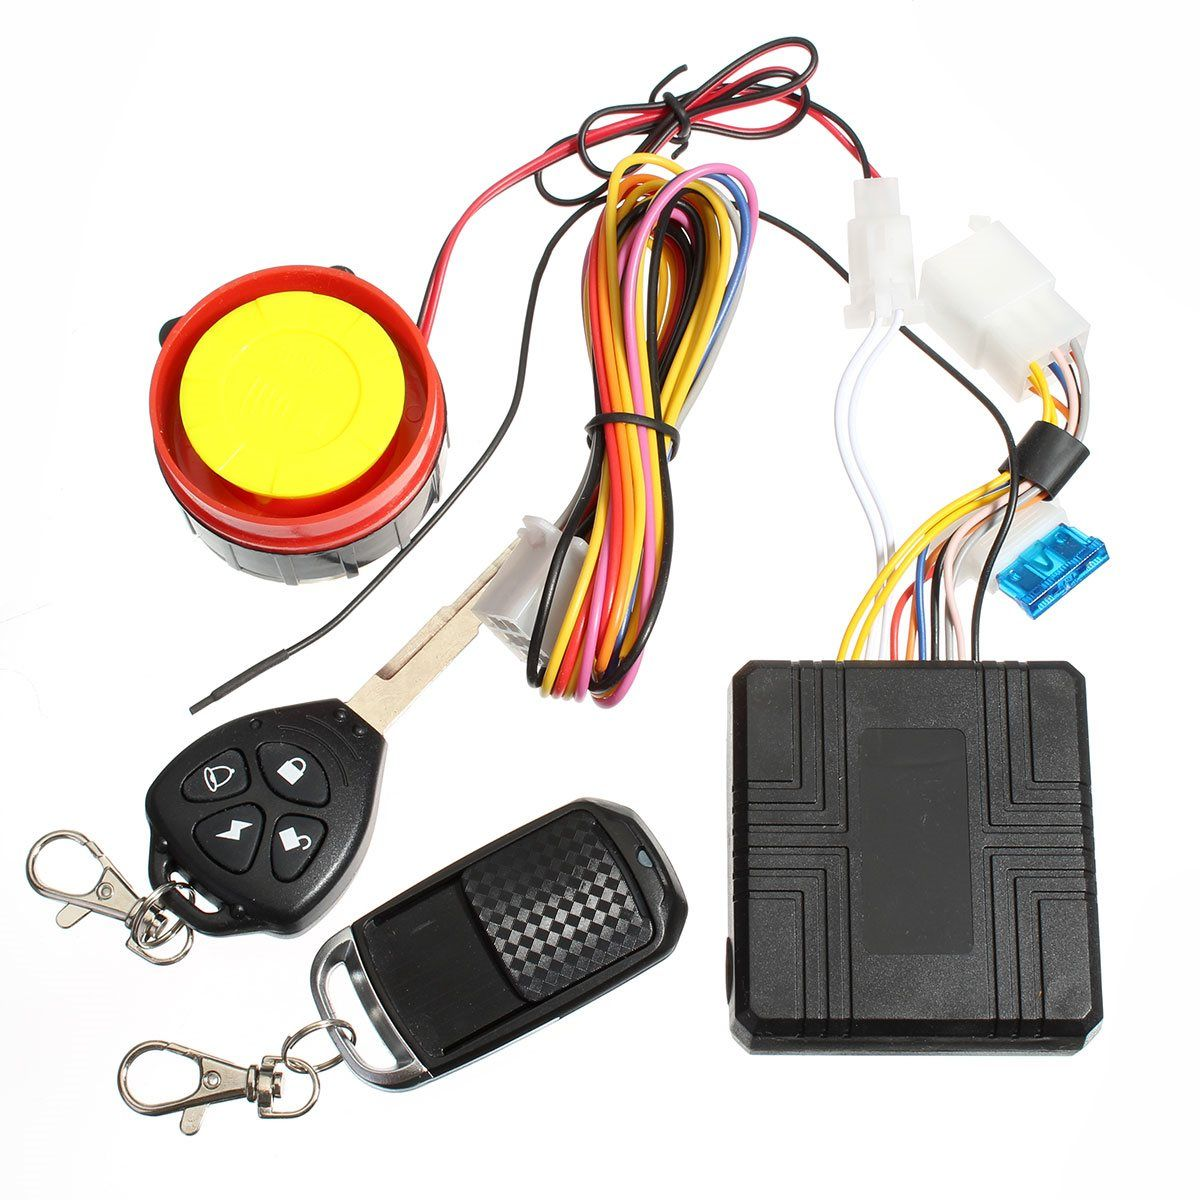 12v Universal Motorcycle Motorbike Scooter Compact Security Alarm System Remote Control Engine Start for Suzuki /Honda /Yamaha